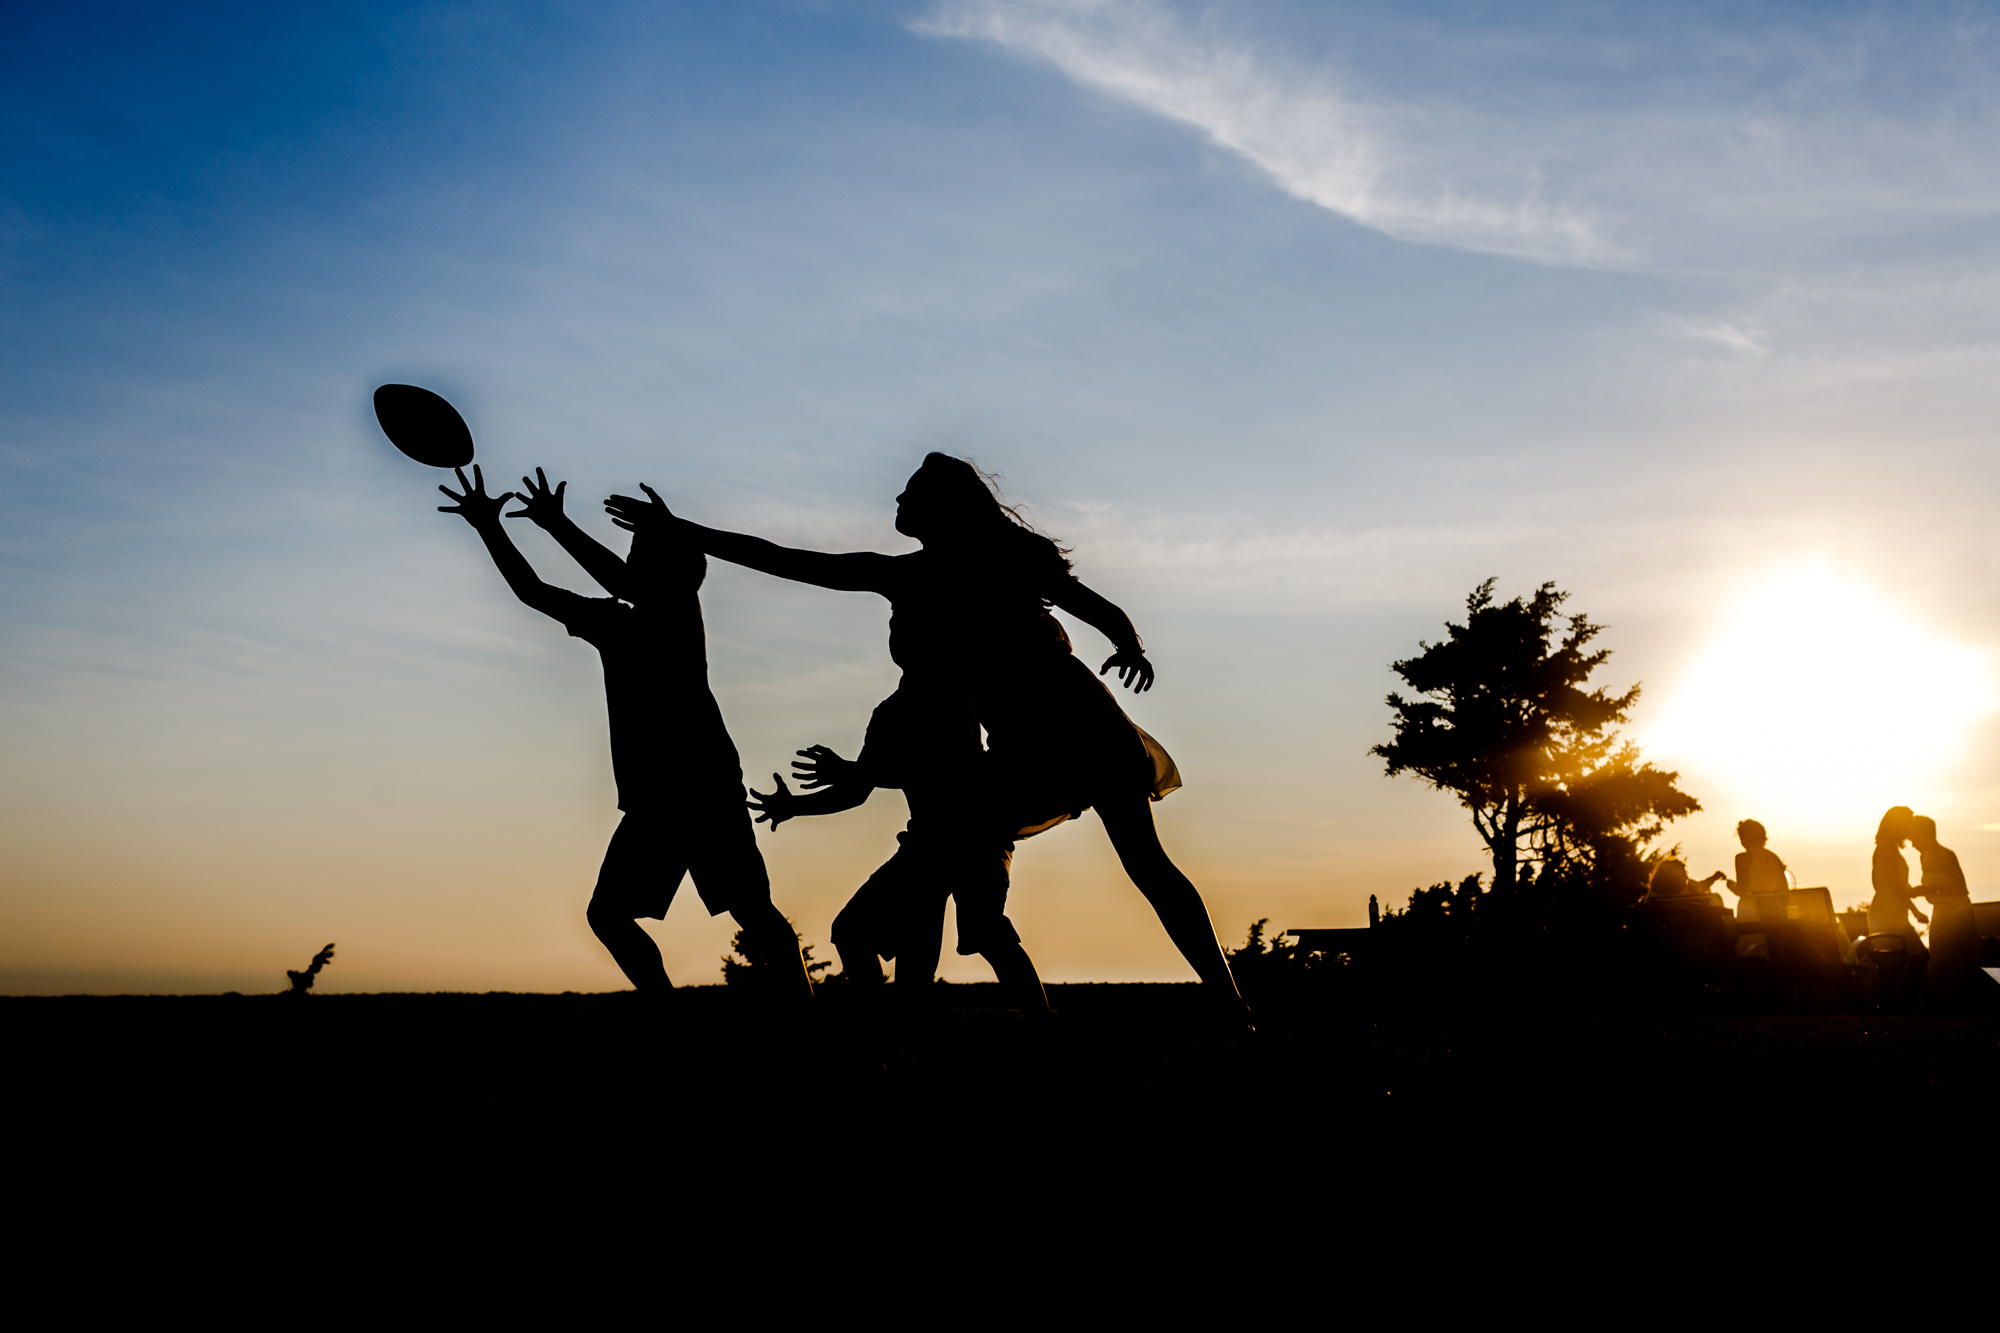 silhouette of kids reaching for football